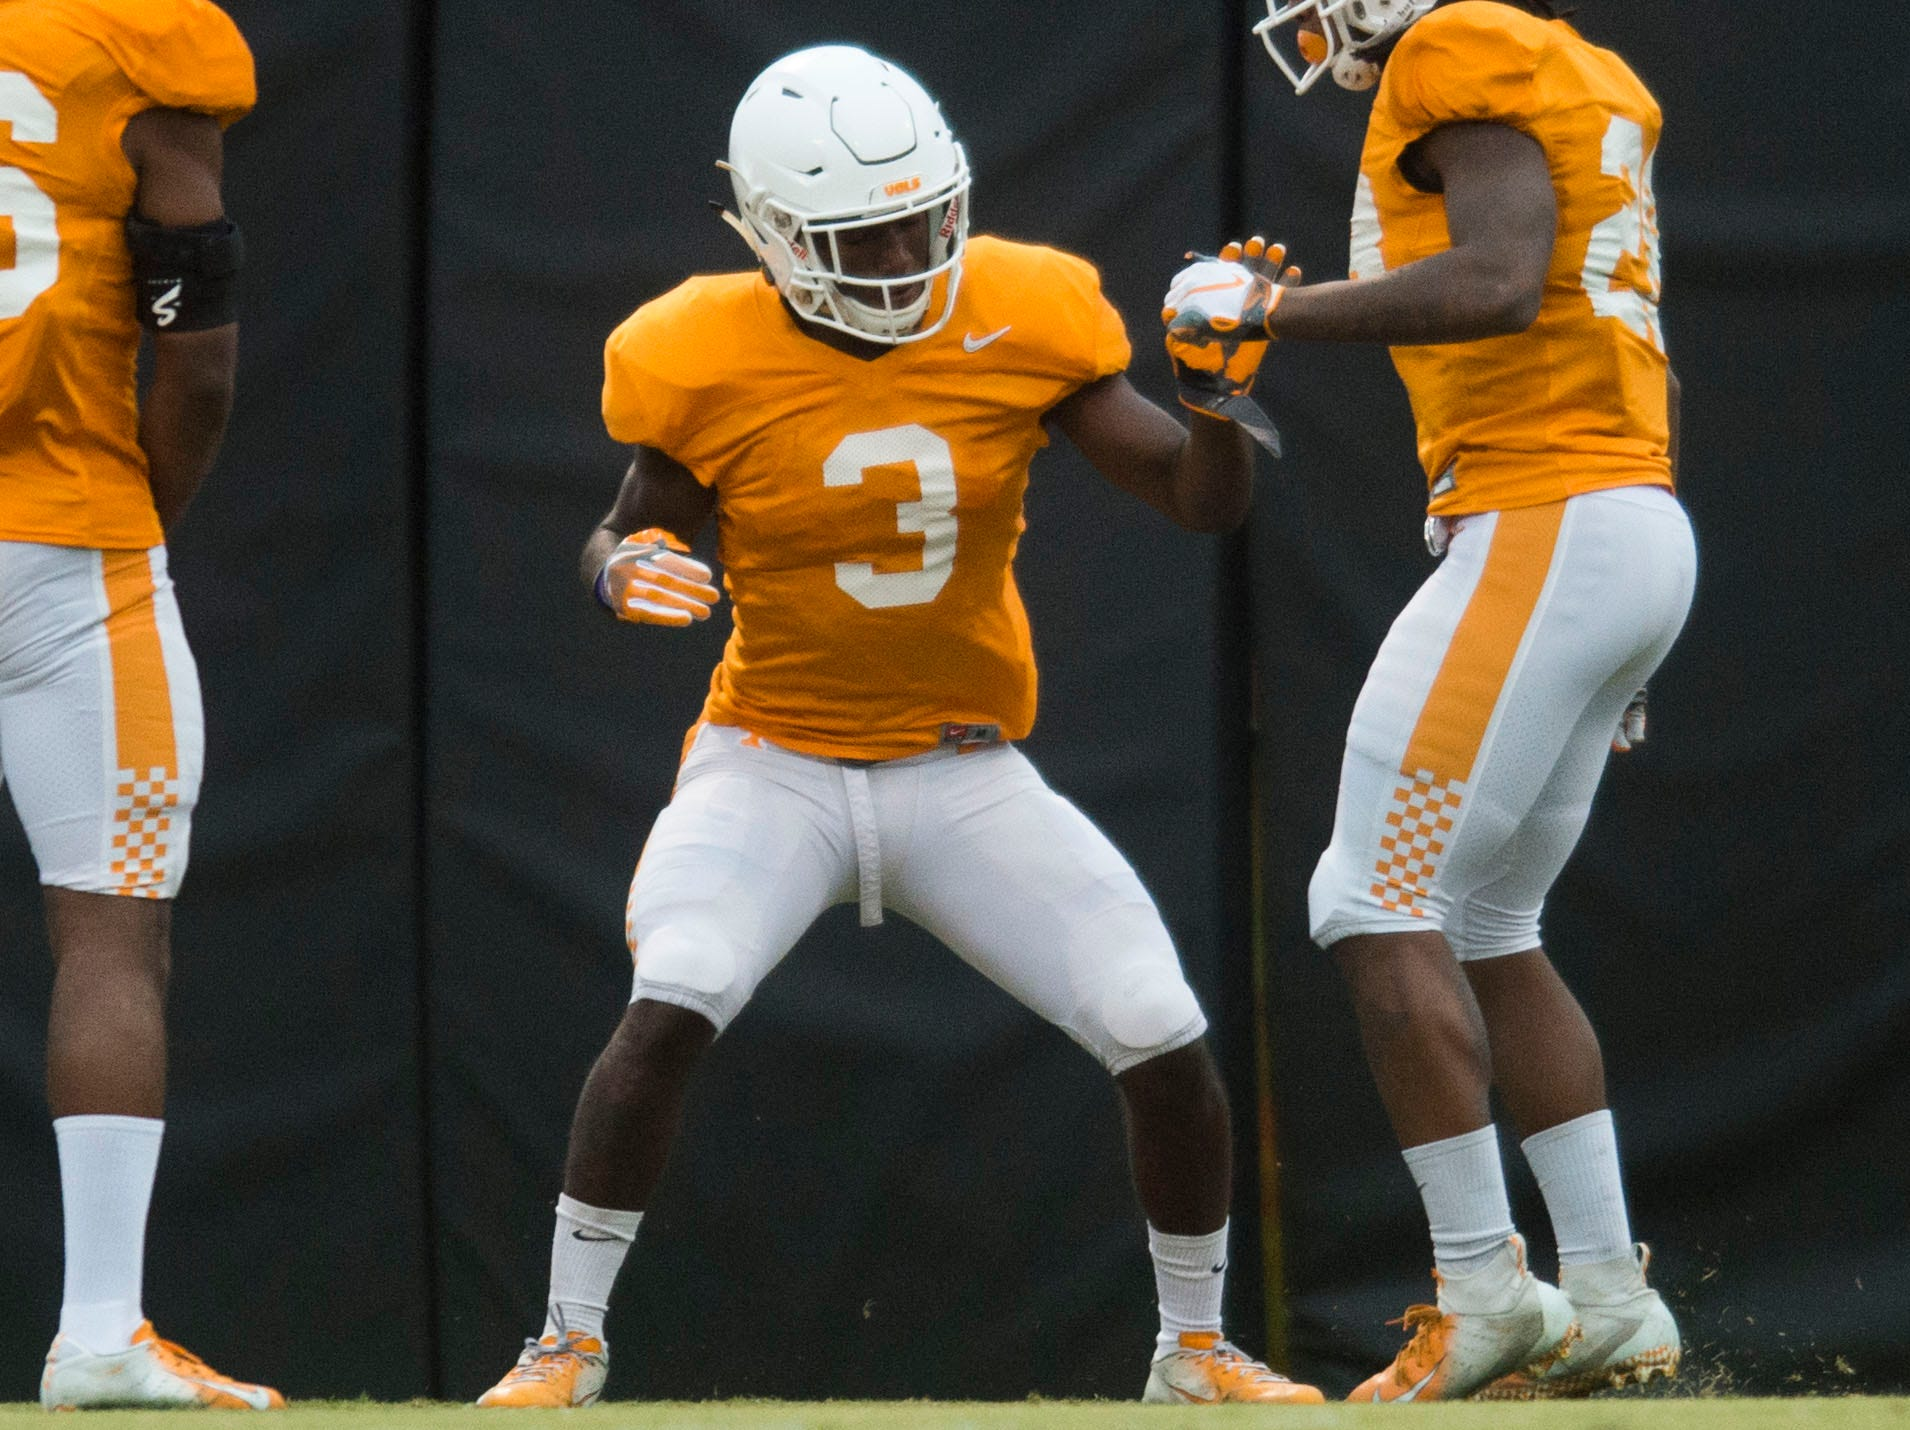 Tennessee defensive back Marquill Osborne (3) participates in a drill with a teammate during a University of Tennessee football practice, Tuesday, Nov. 13, 2018.